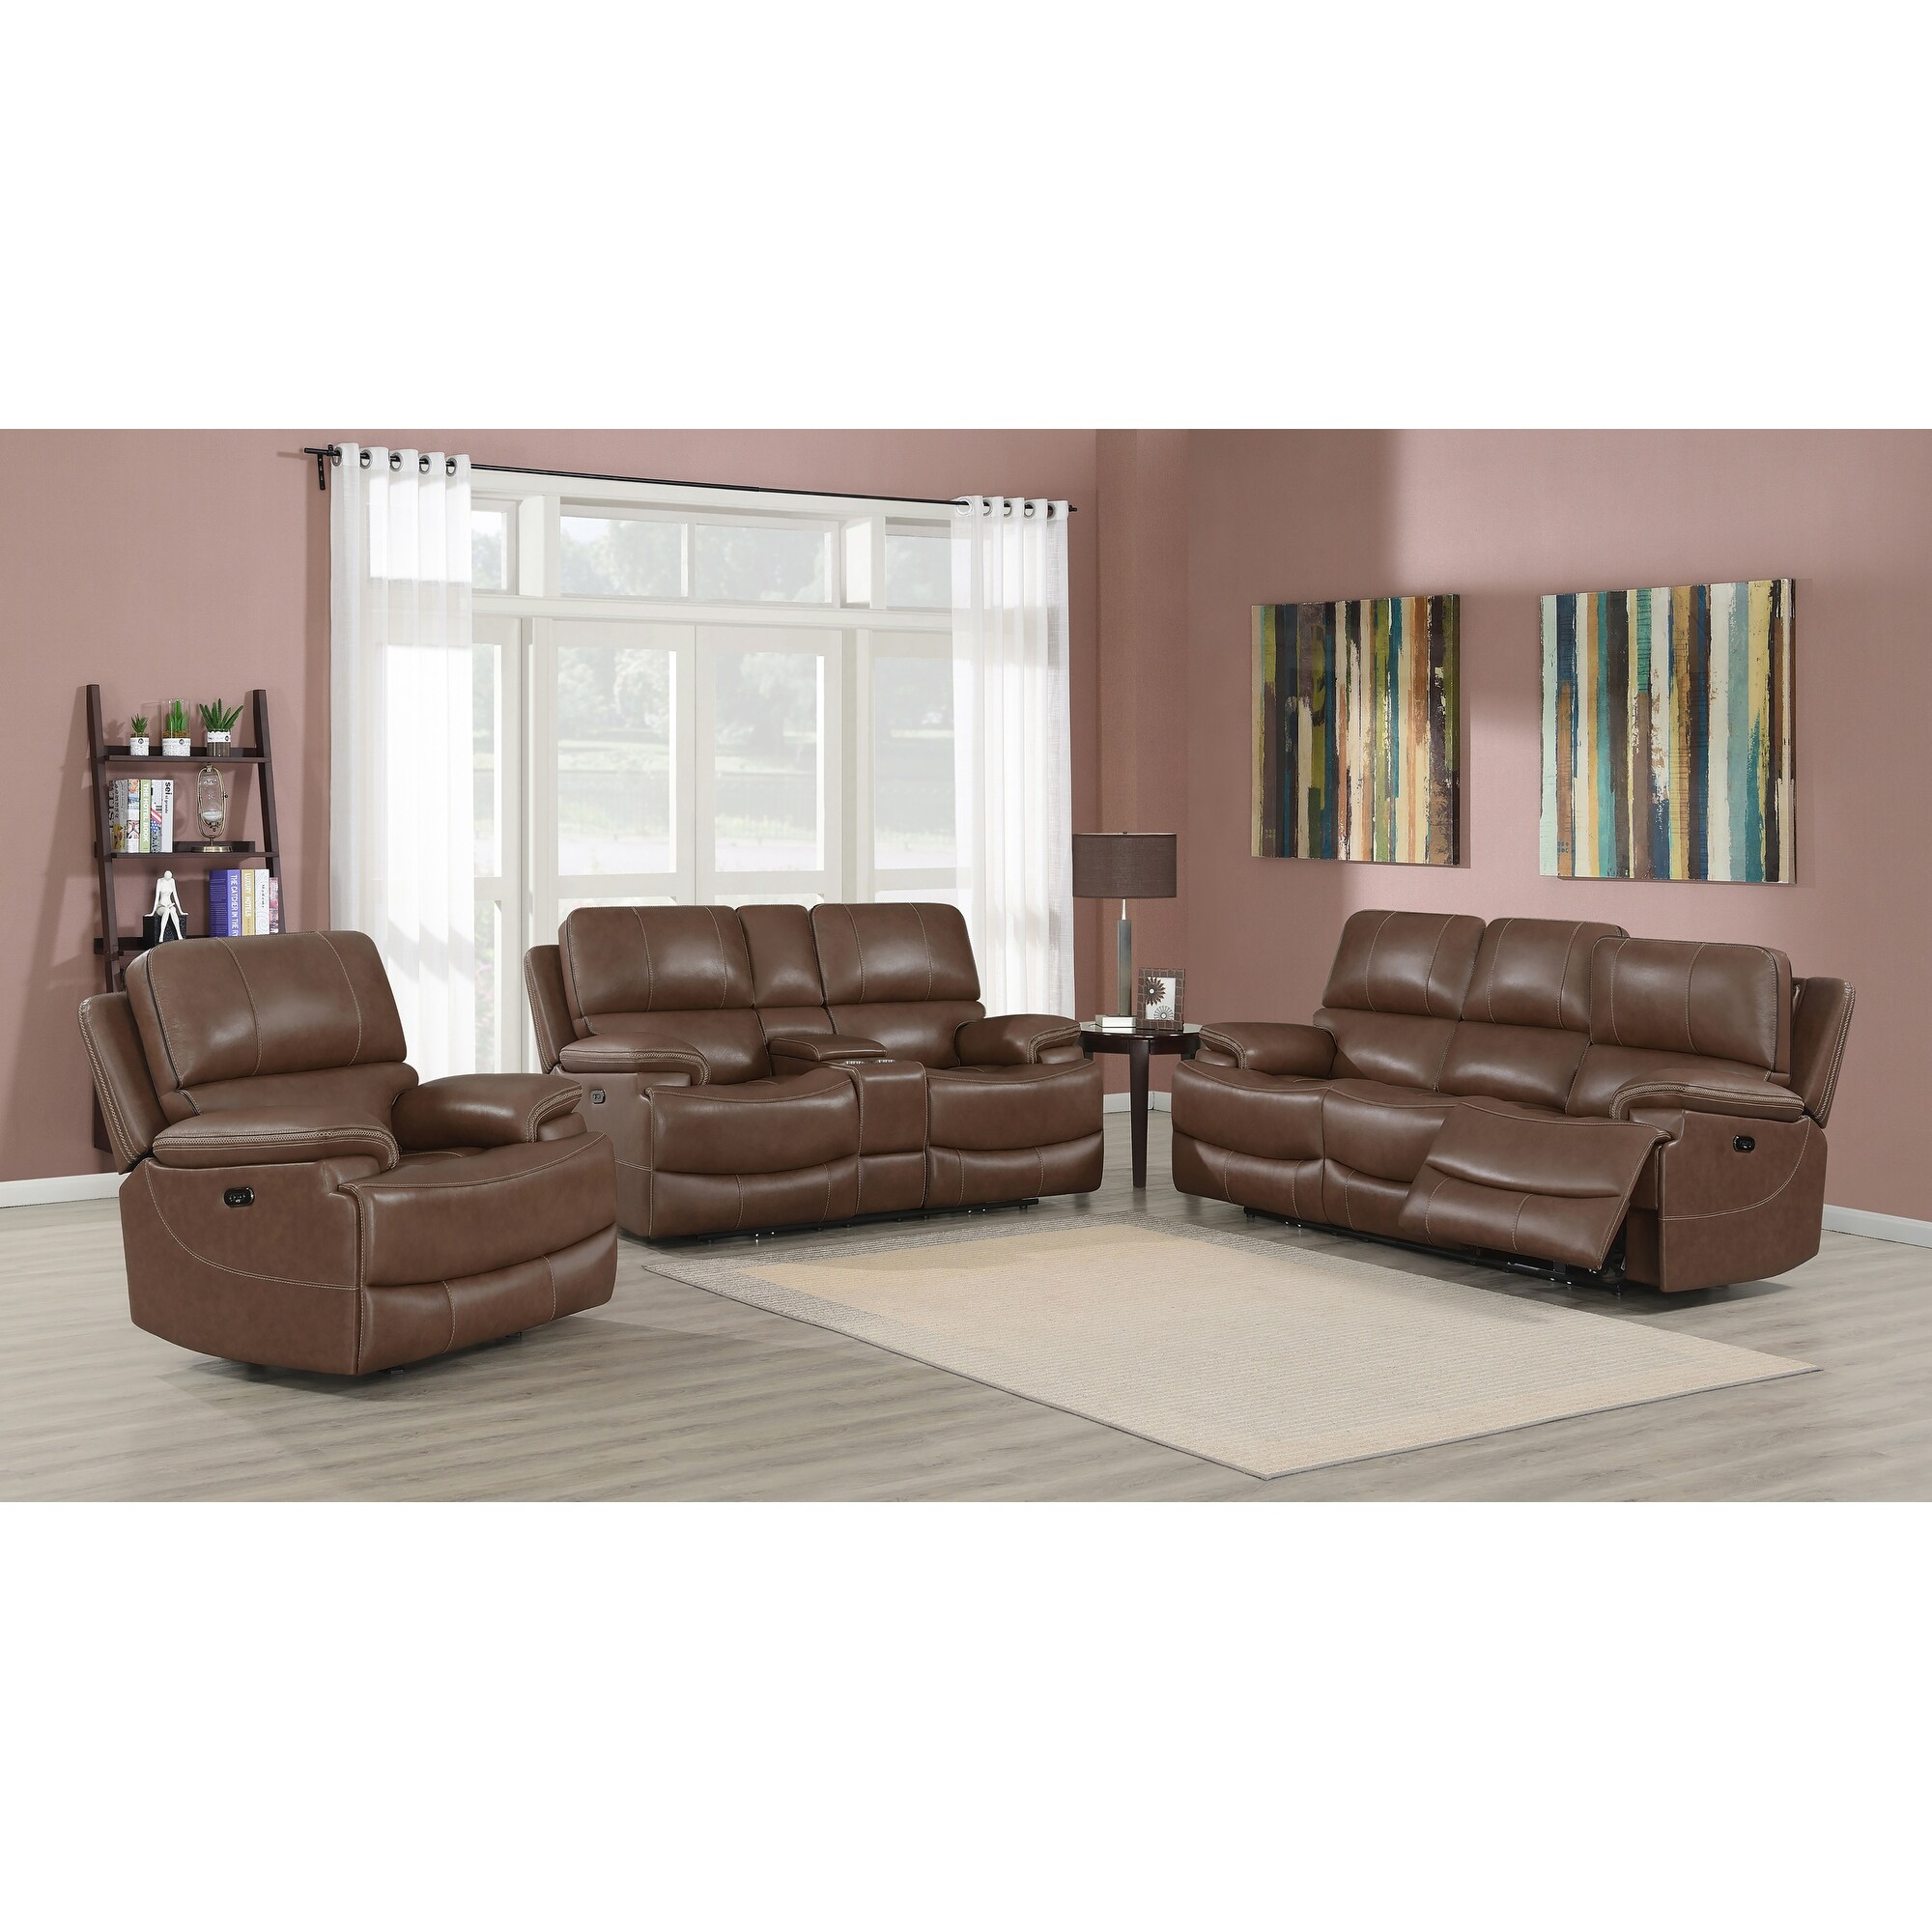 Gavin Saddle Brown 2 Piece Pillow Top Arms Living Room Set On Sale Overstock 32235774